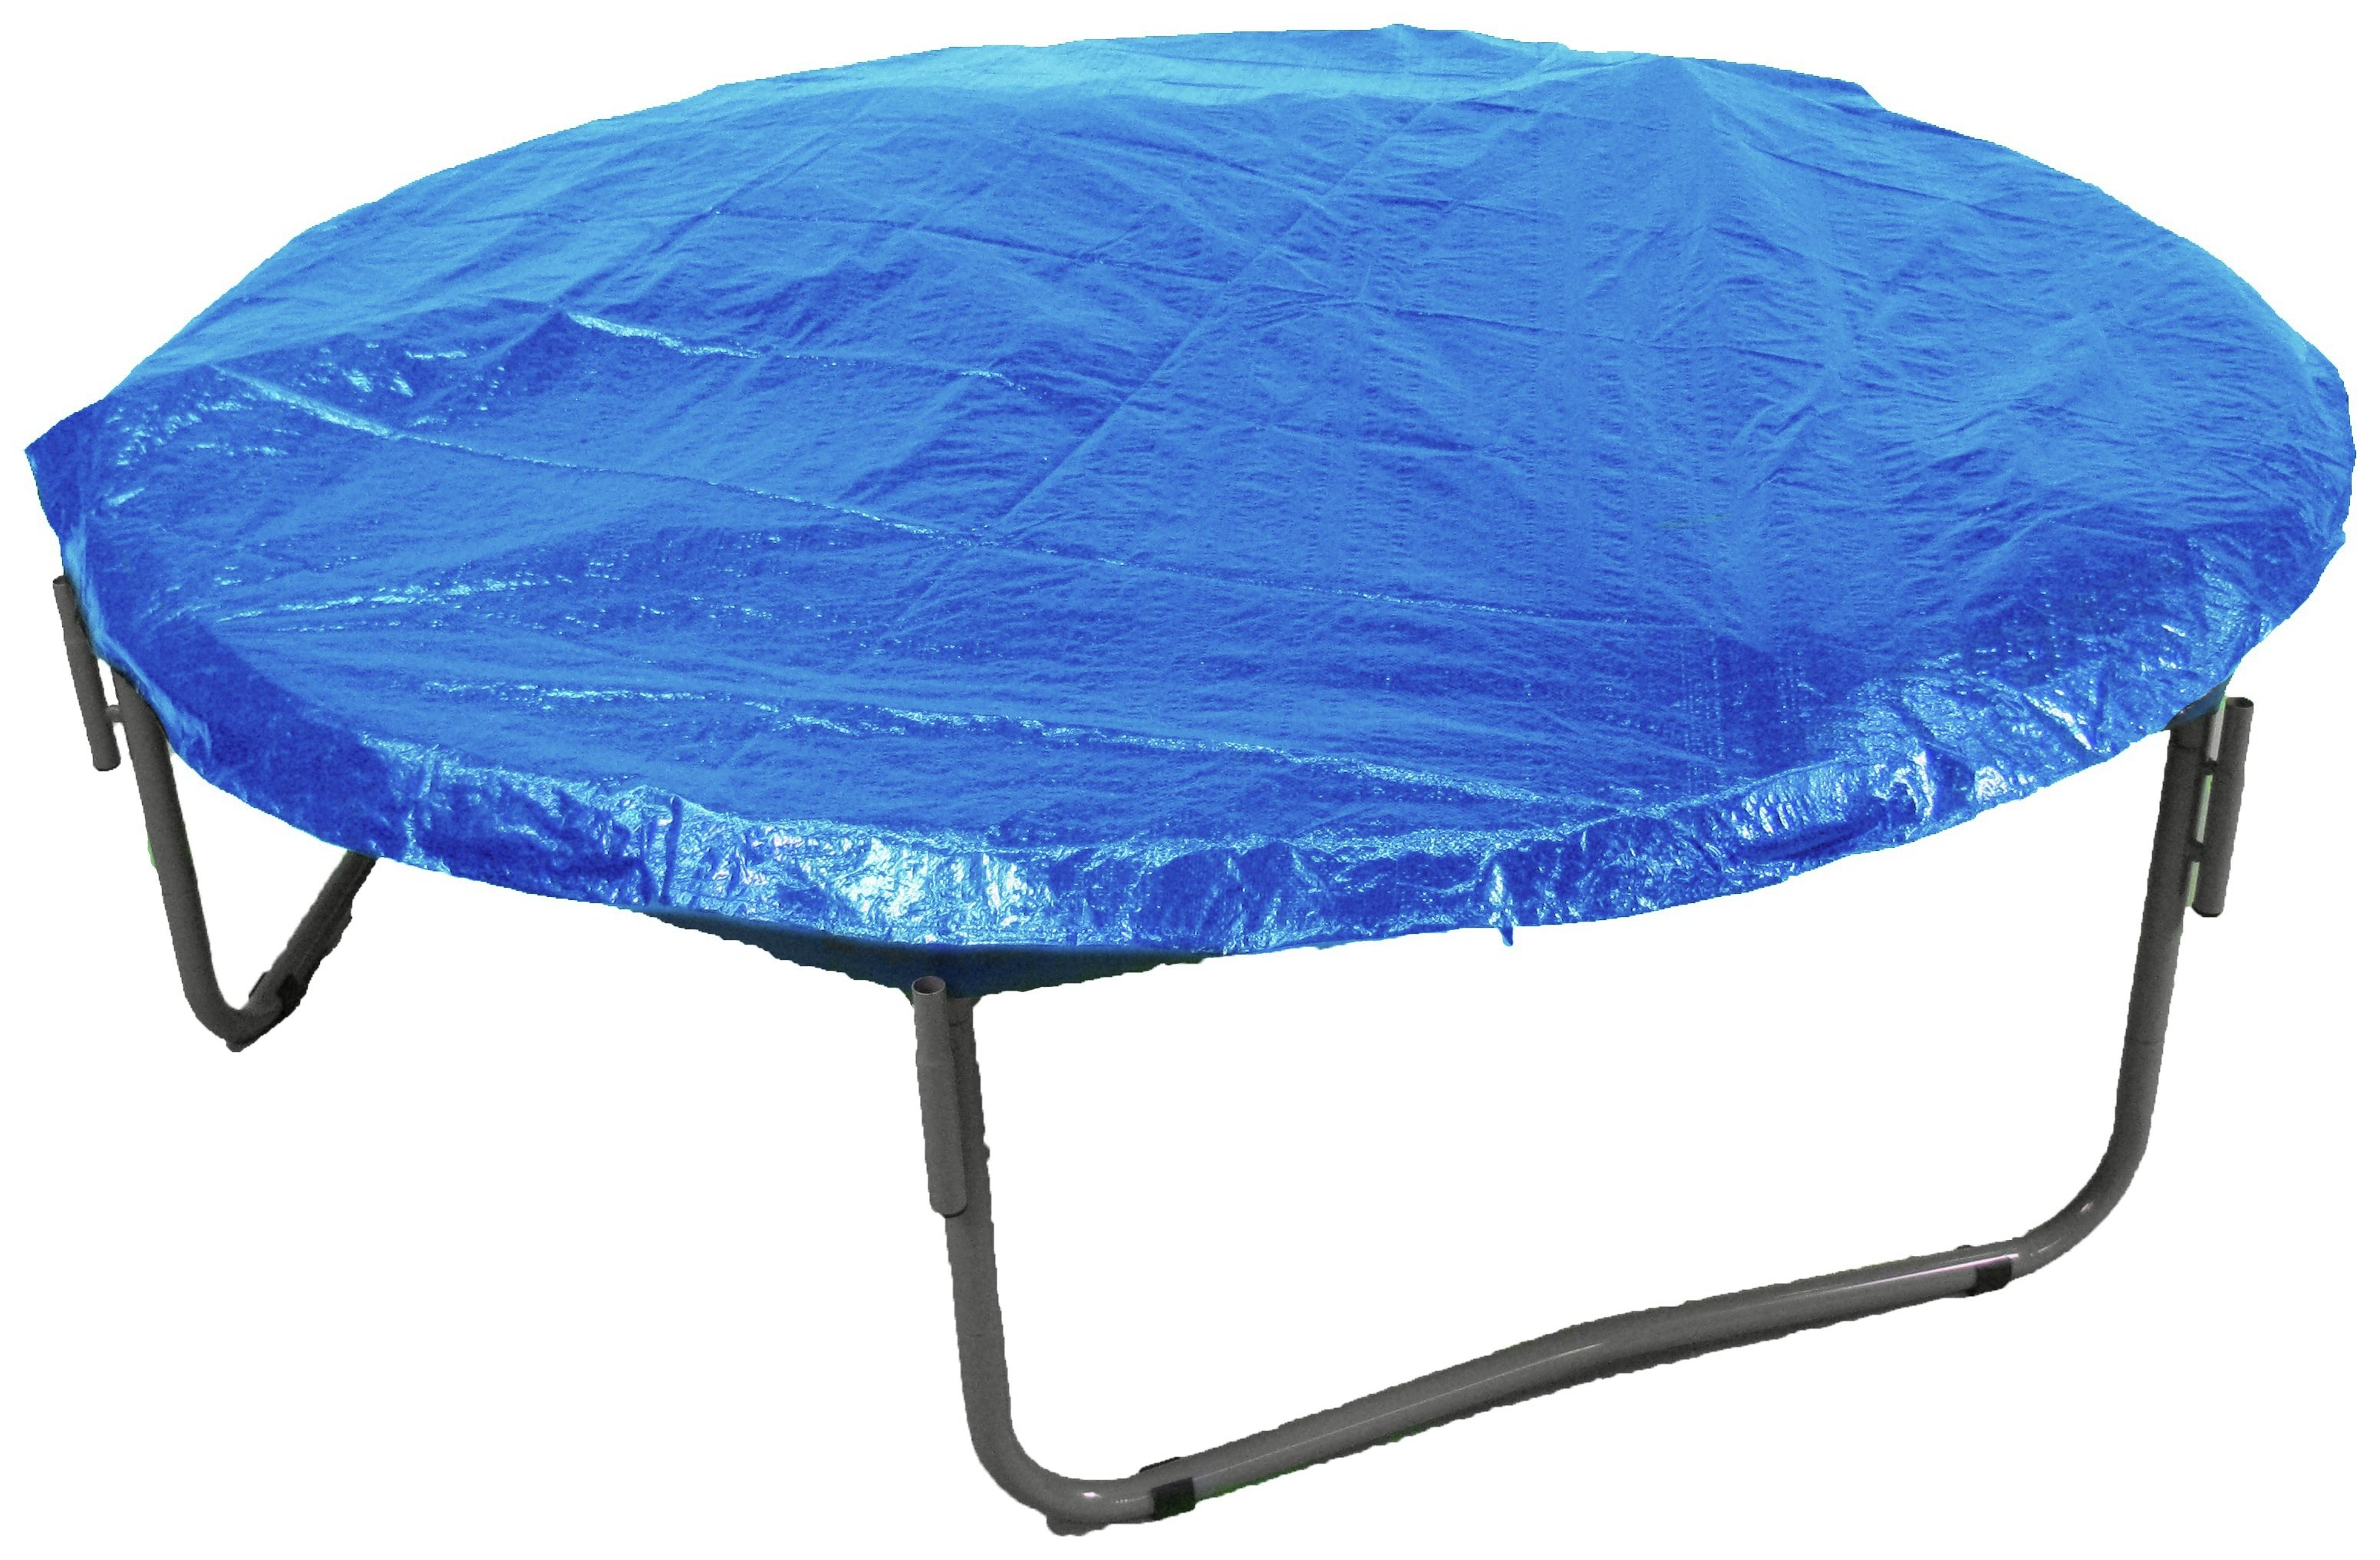 upper bounce 6ft trampoline weather protection cover.